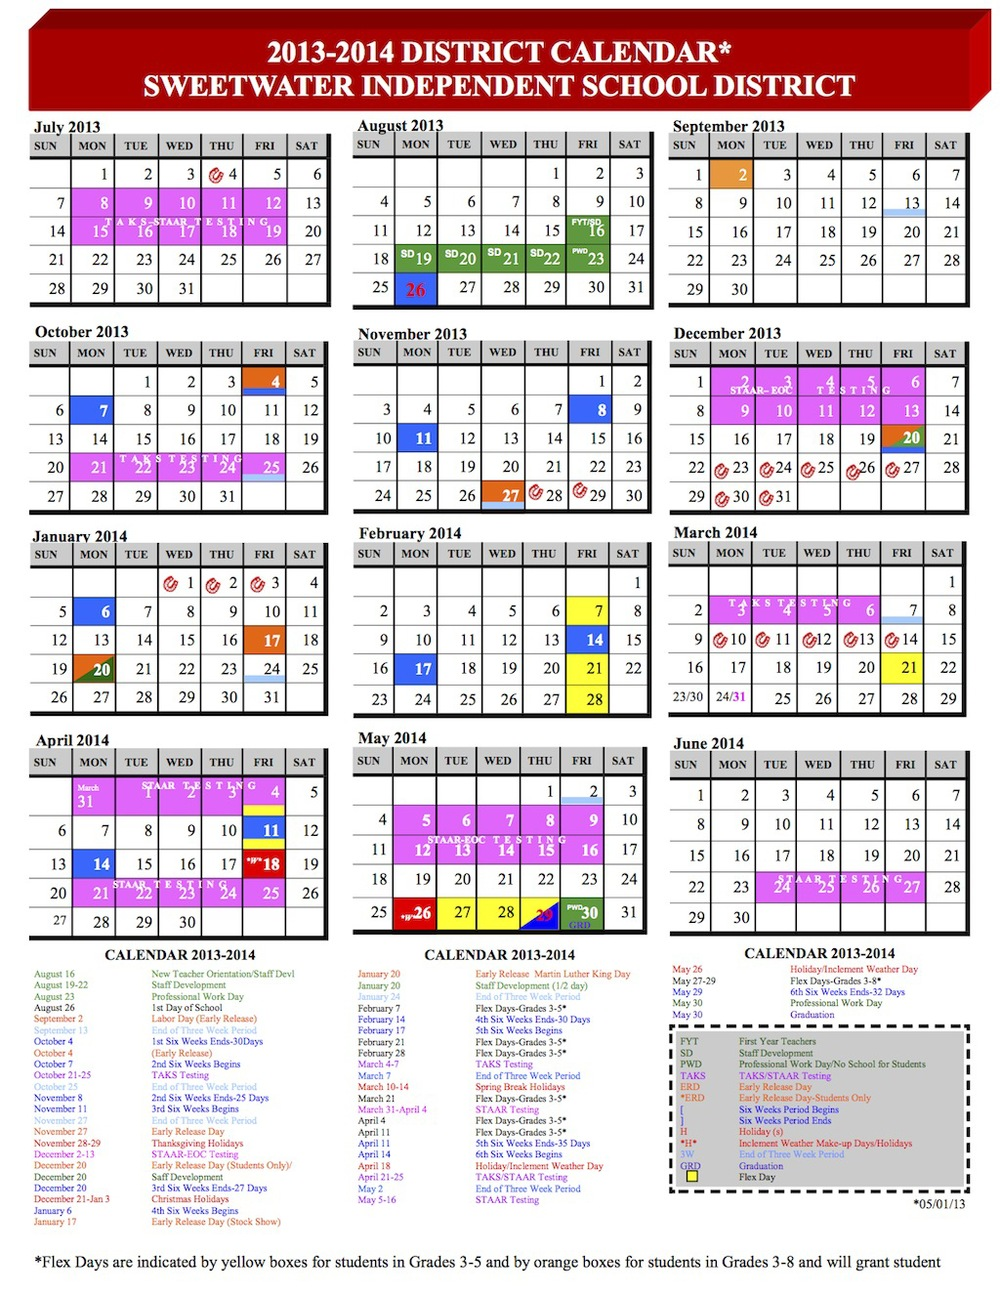 SISD District Calendar 2013-2014.jpg